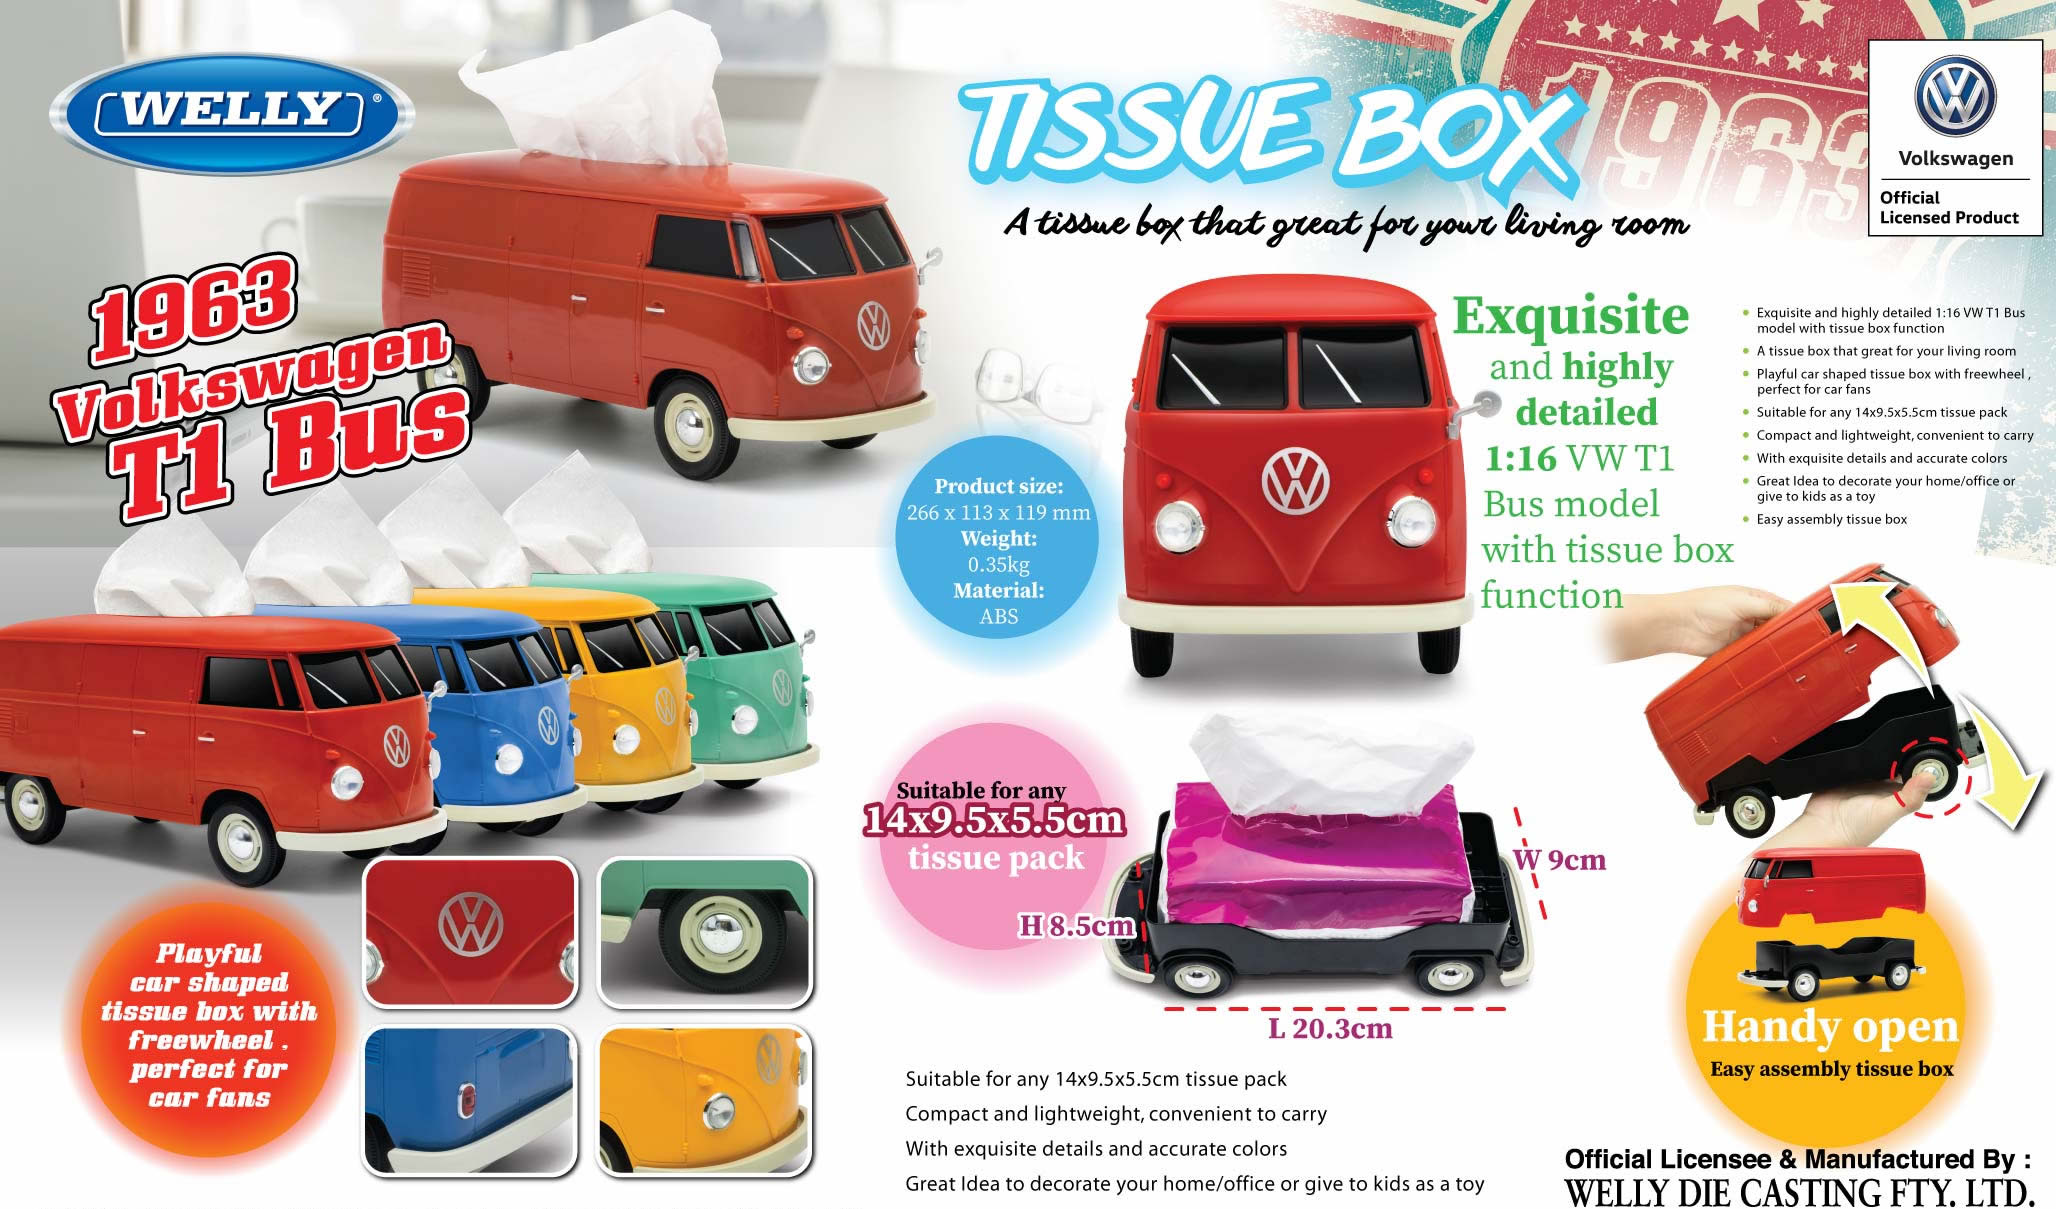 poster-vw-tissue-box.jpg